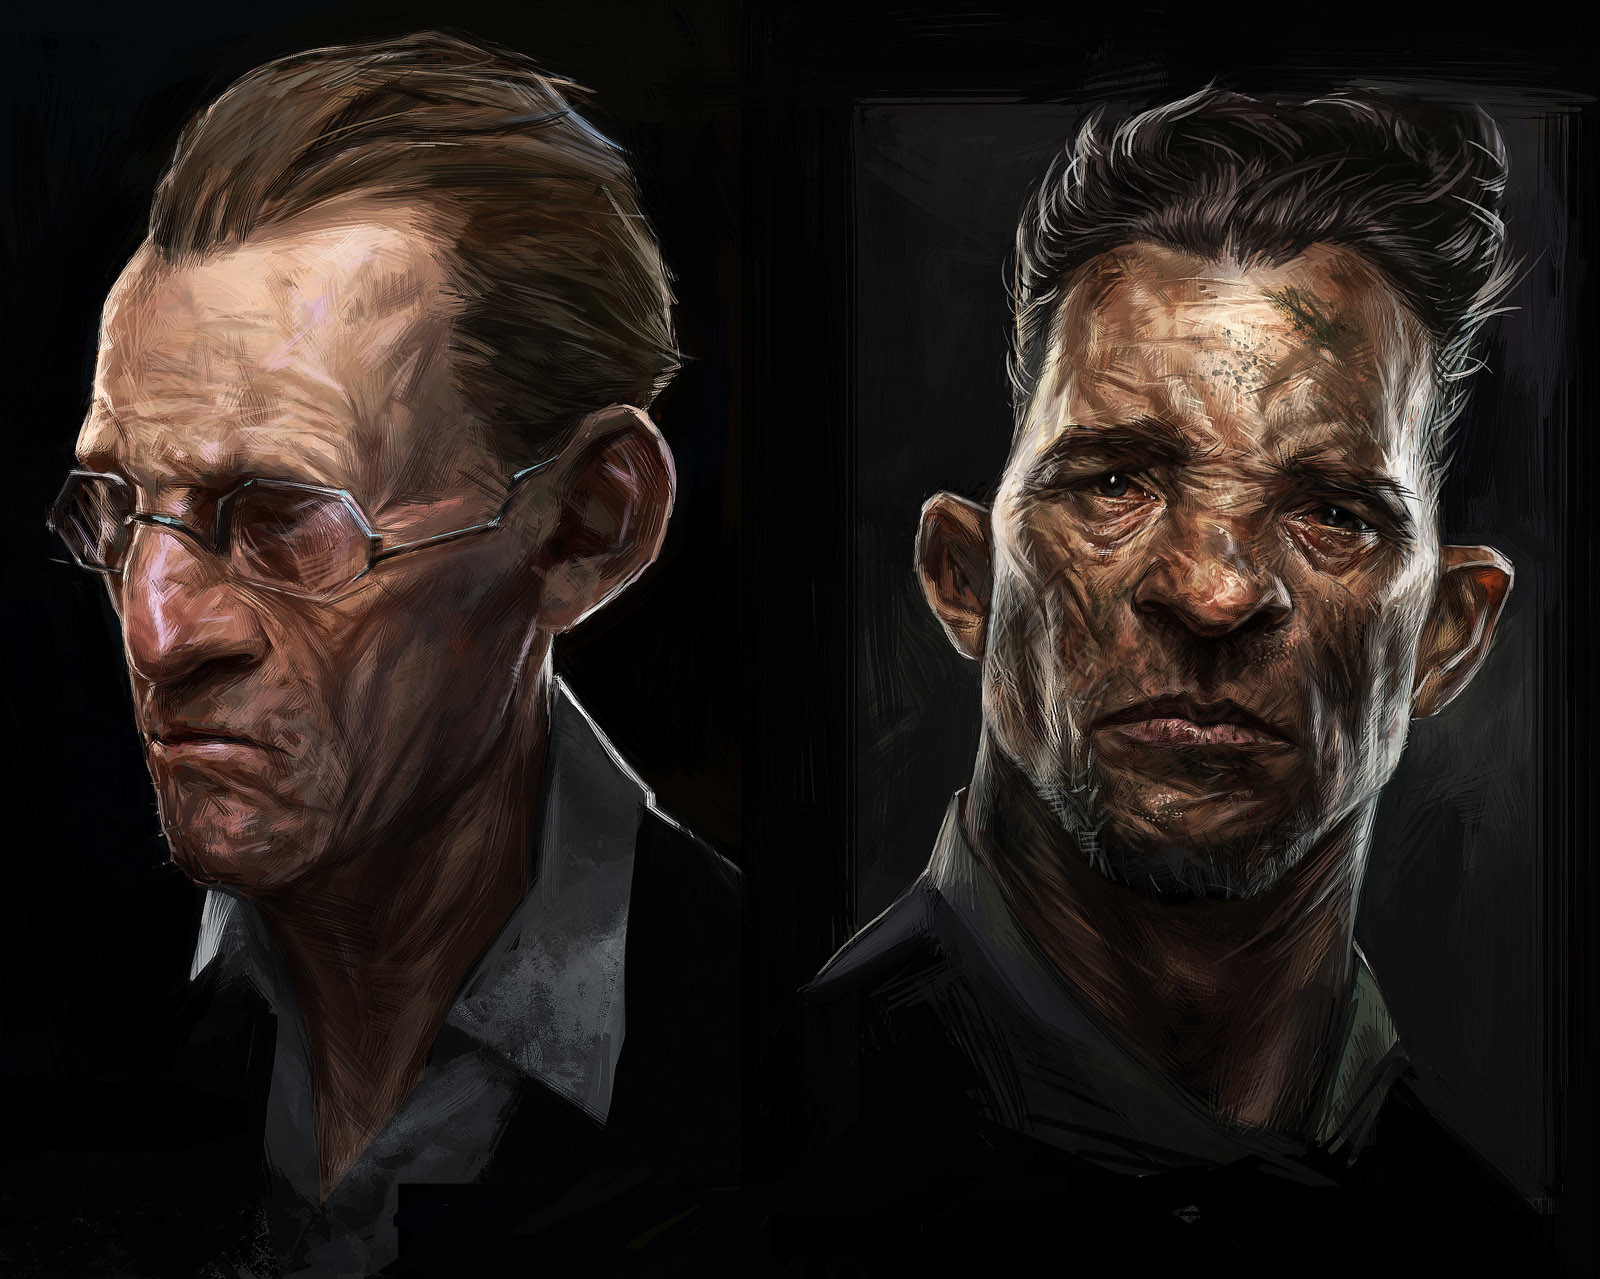 The Movie Sleuth Images The Art Of Dishonored 2